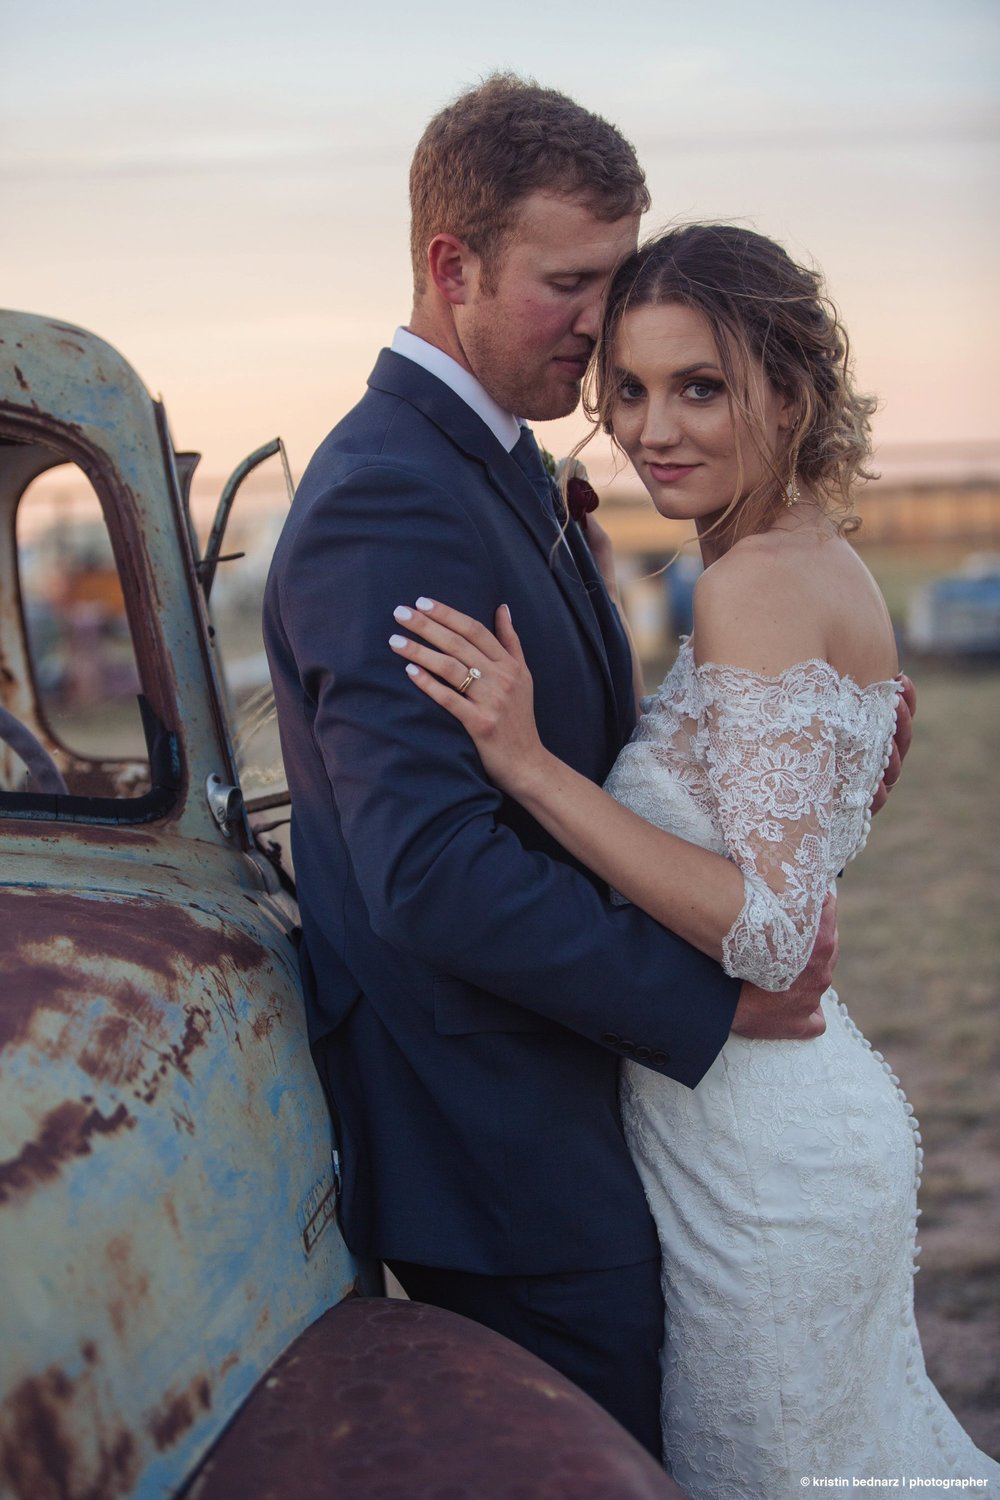 Krisitin_Bednarz_Lubbock_Wedding_Photographer_20180602_0085.JPG